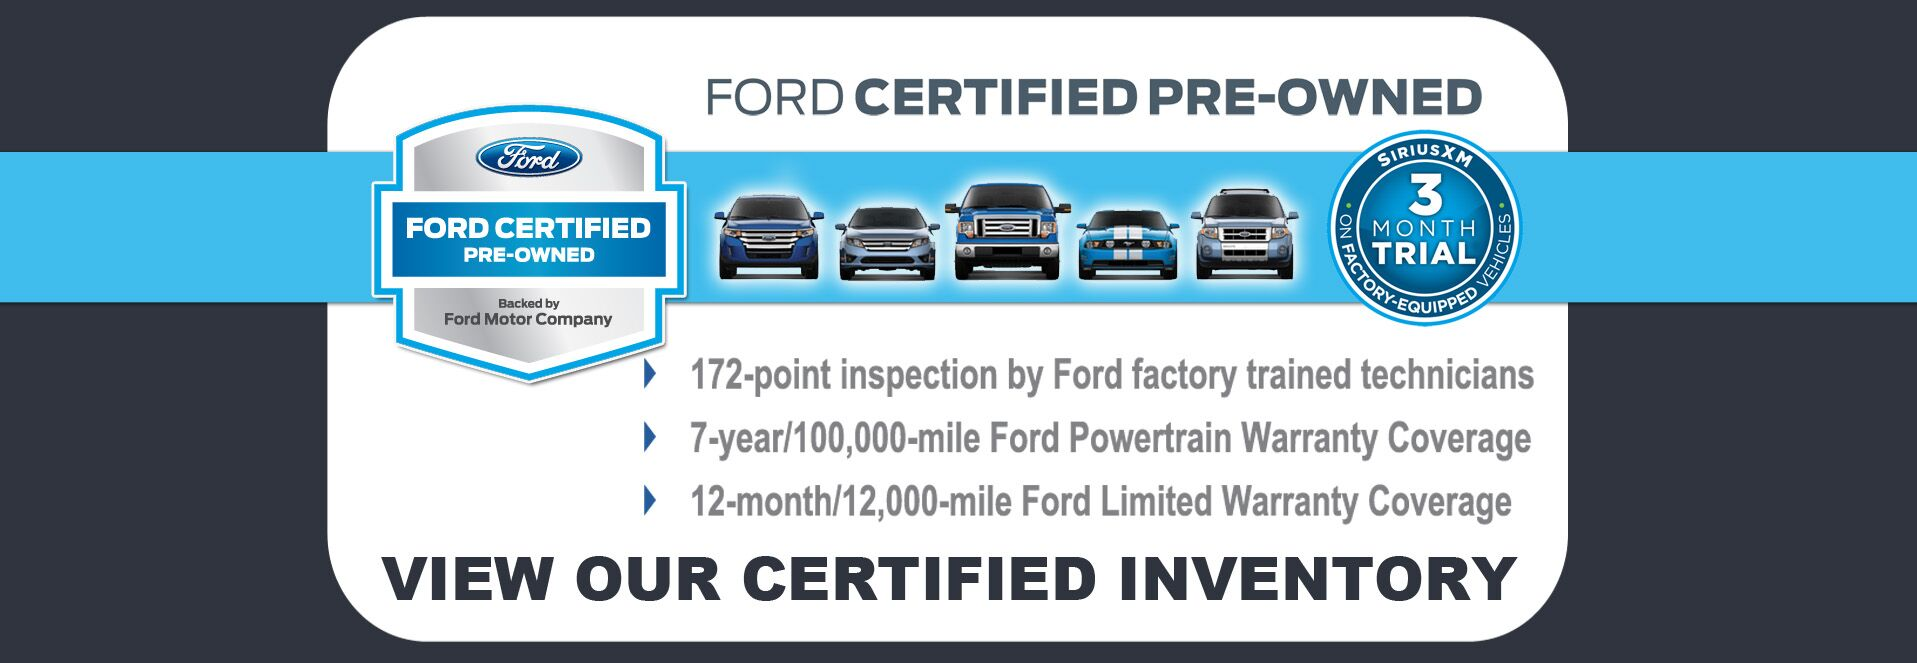 ford certified pre owned davenport ia why buy ford certified pre owned. Cars Review. Best American Auto & Cars Review